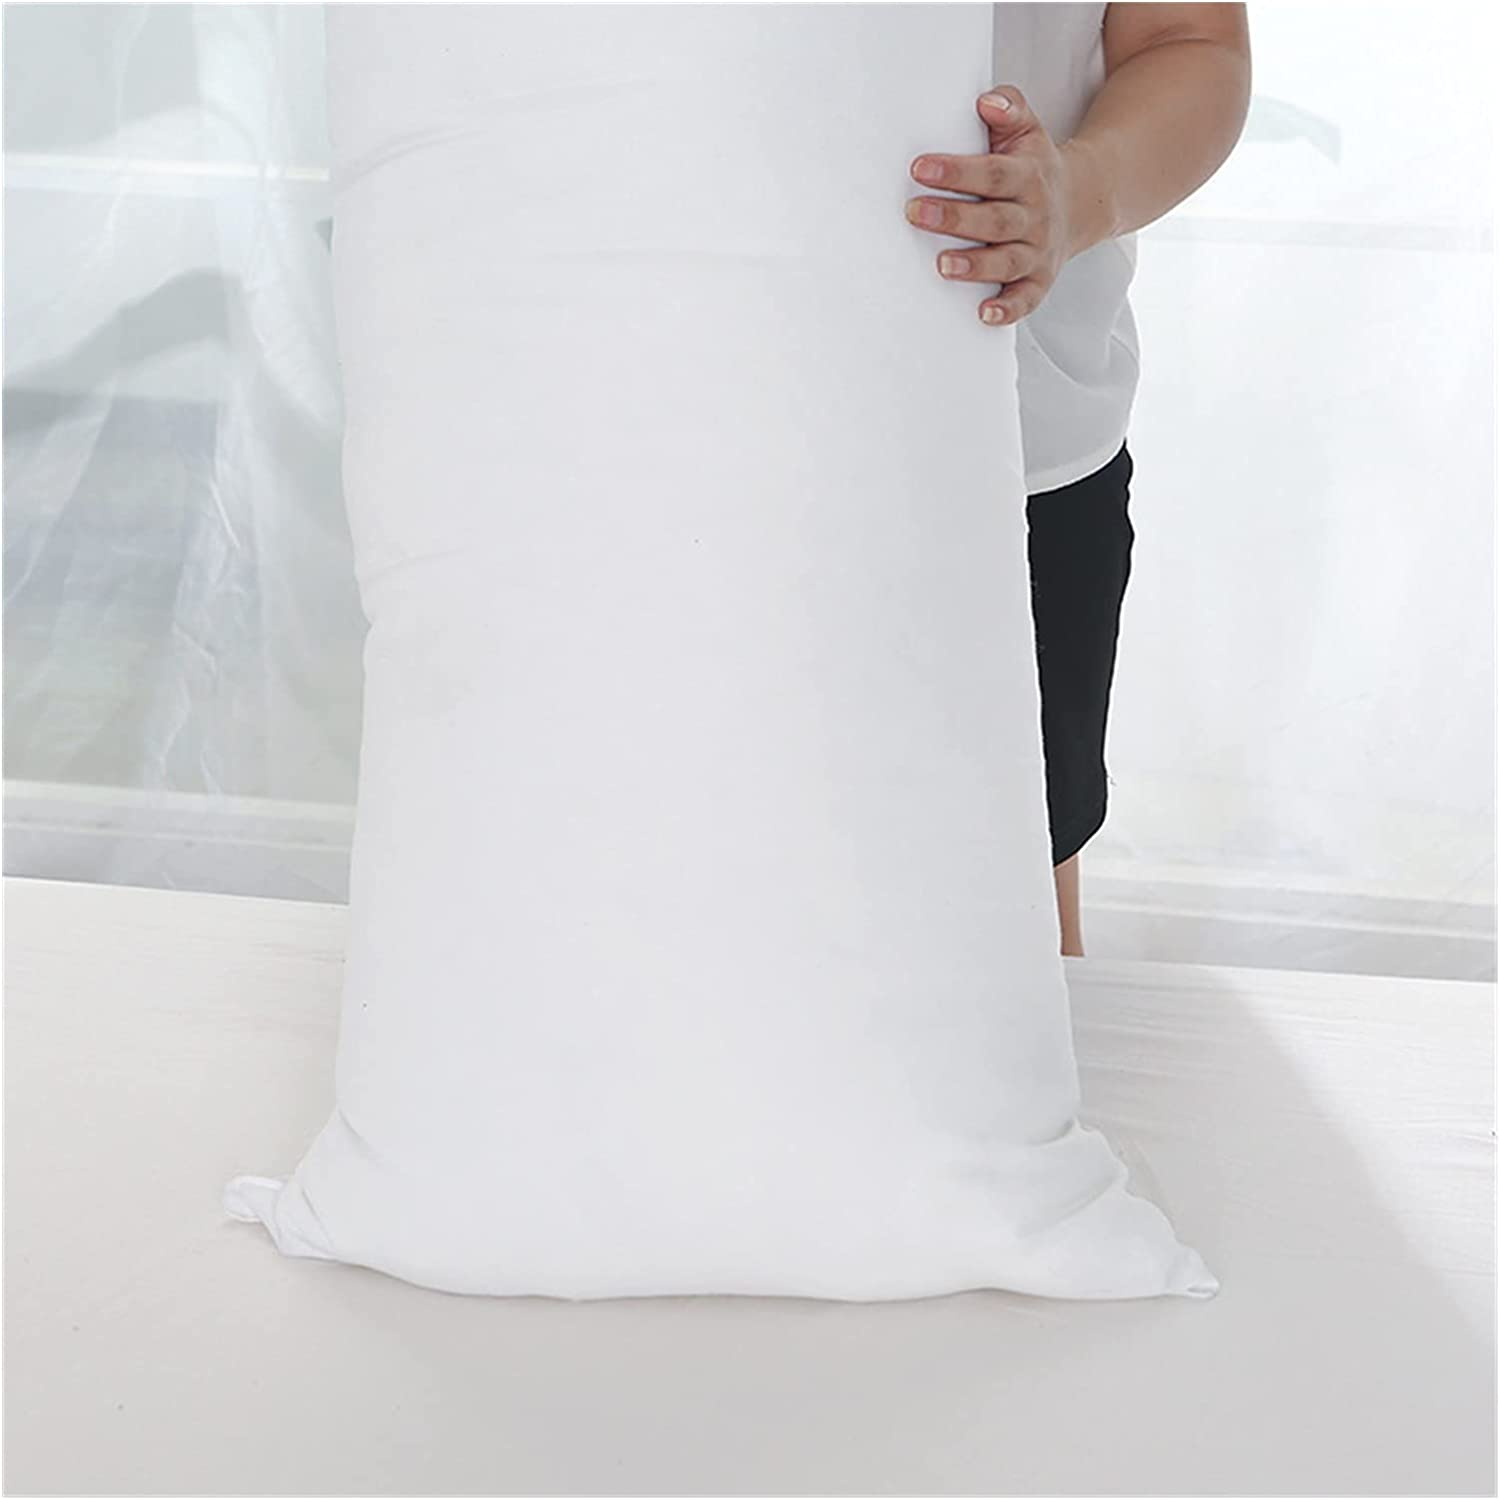 ppqq Very Soft and Comfortable for Pillow Suitable Every Directly managed latest store All